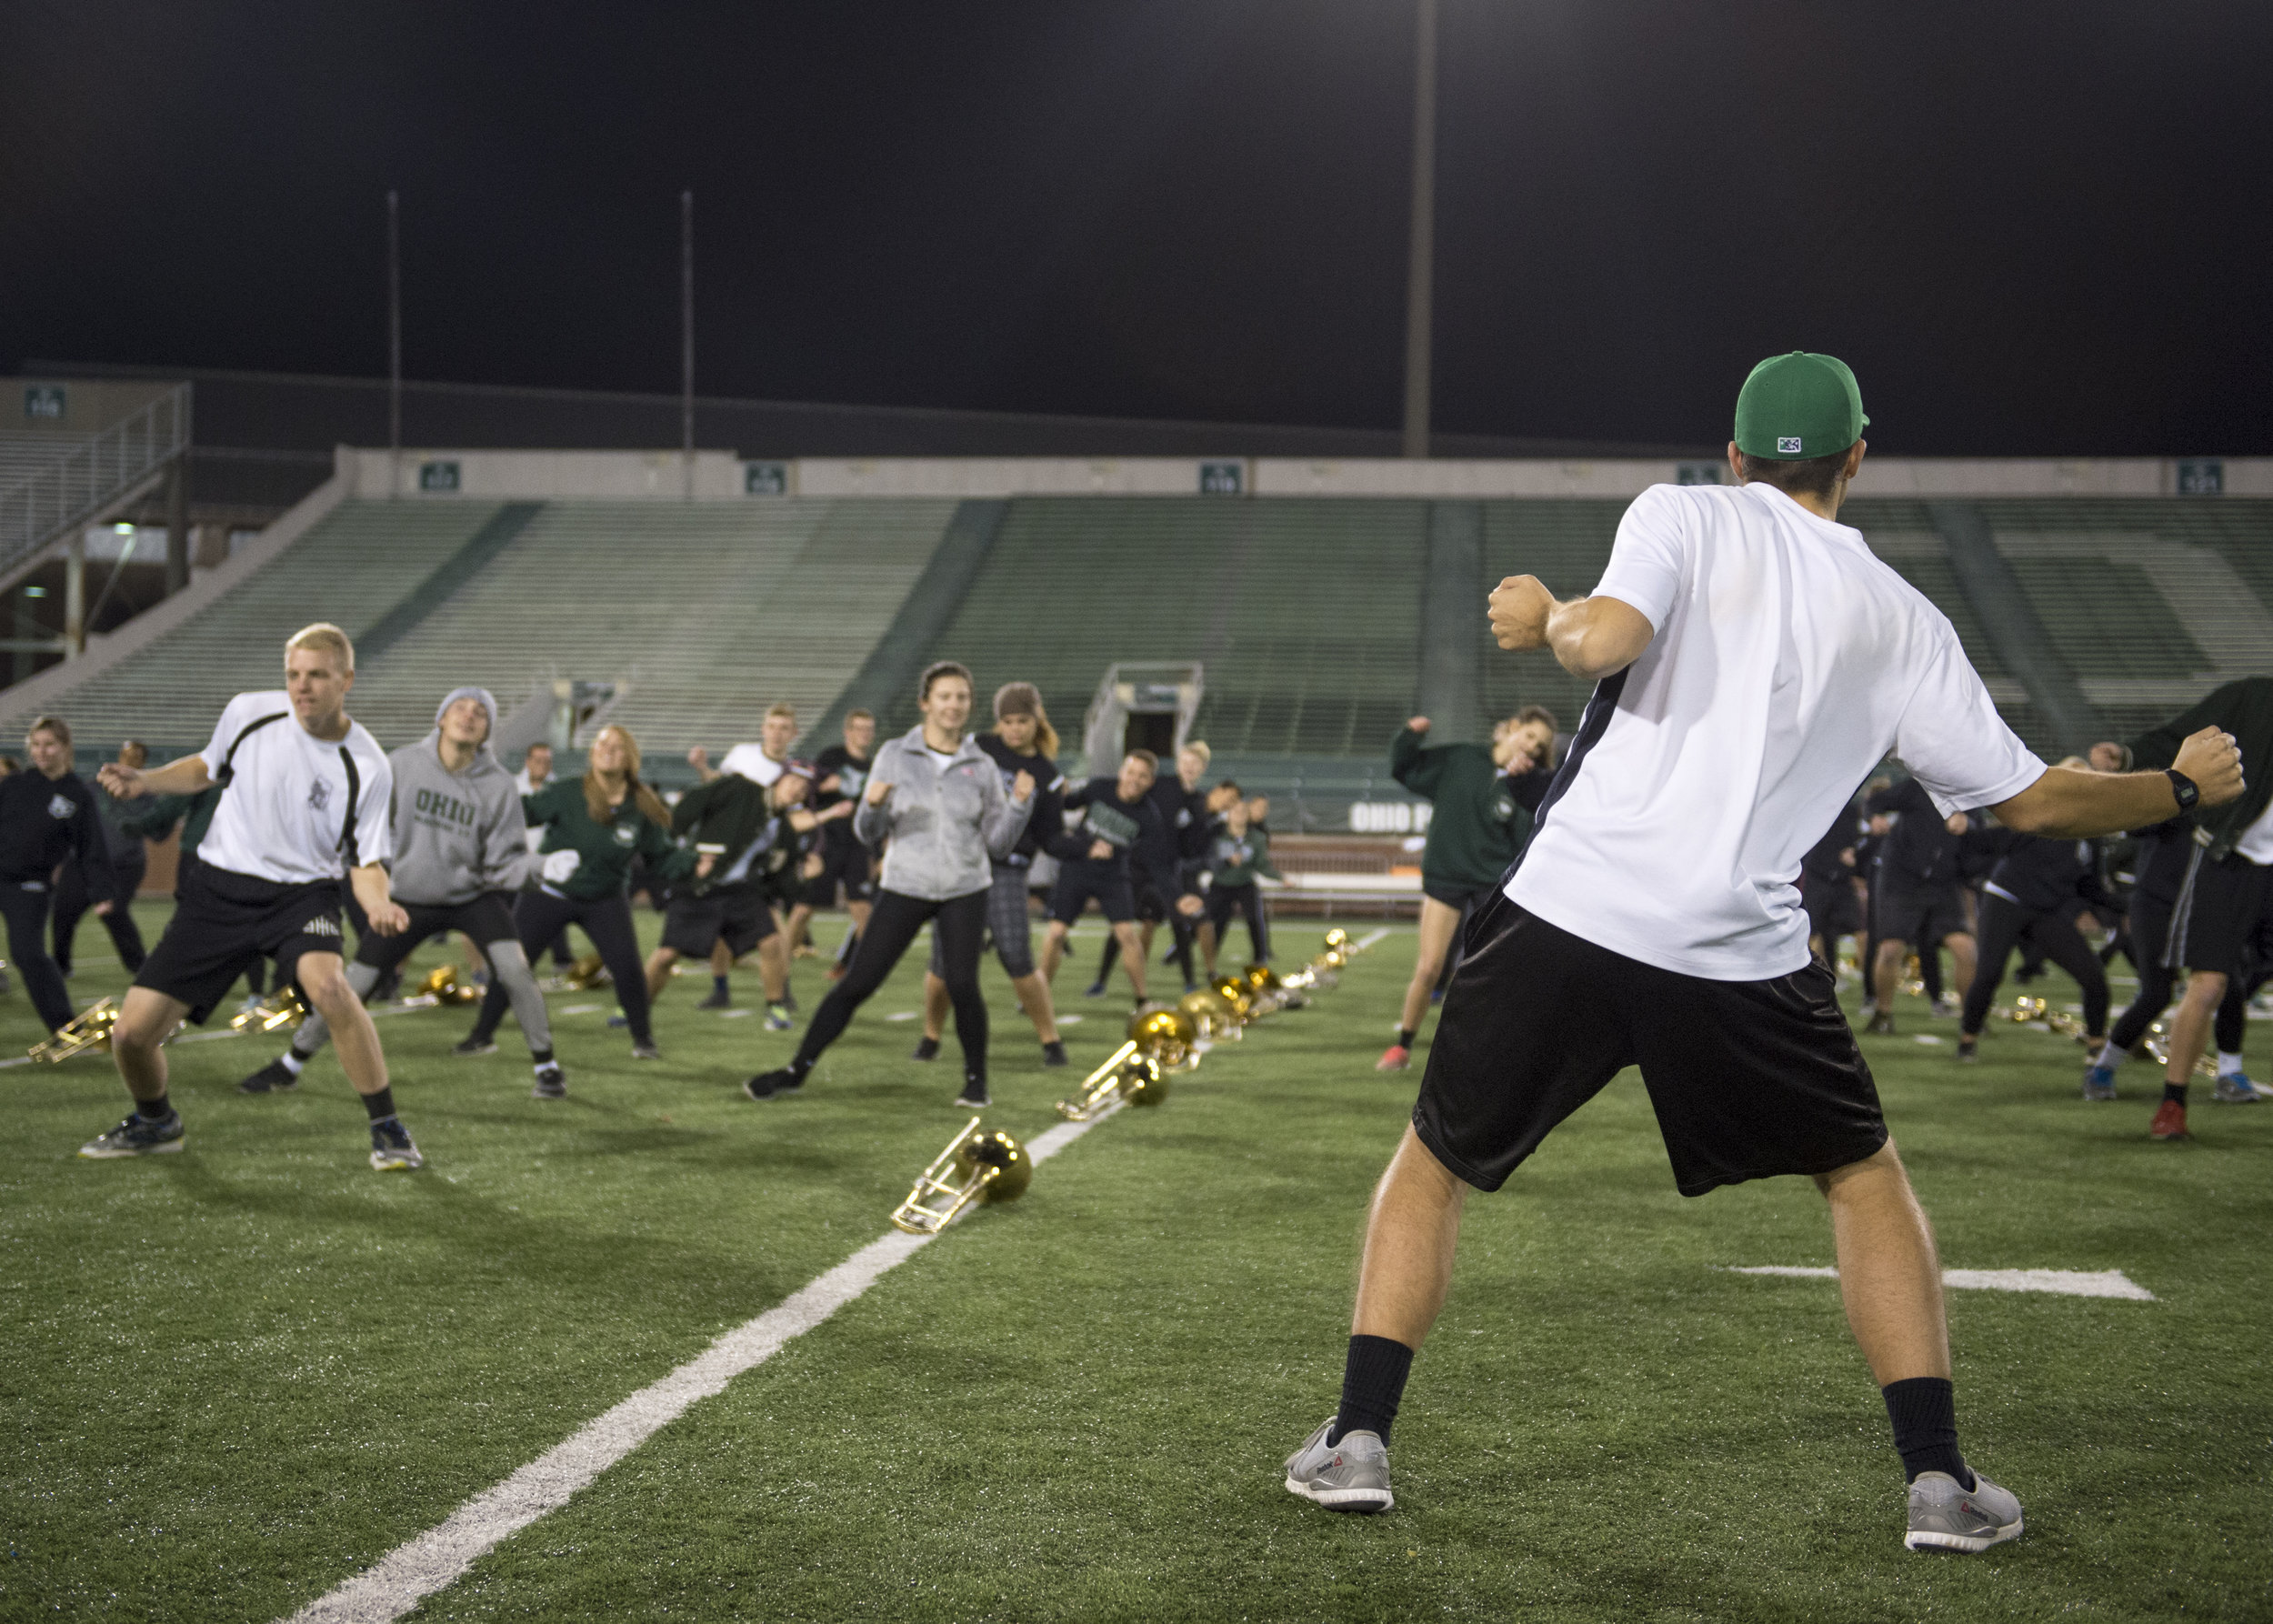 """One week removed from the final game of the season, dance commander Kyle Arnott and the rest of the 110 go through their dance break. The break included moves from the viral dance hit """"Juju on that Beat,"""" but the music performed during the show was a trio of songs by Earth, Wind & Fire."""